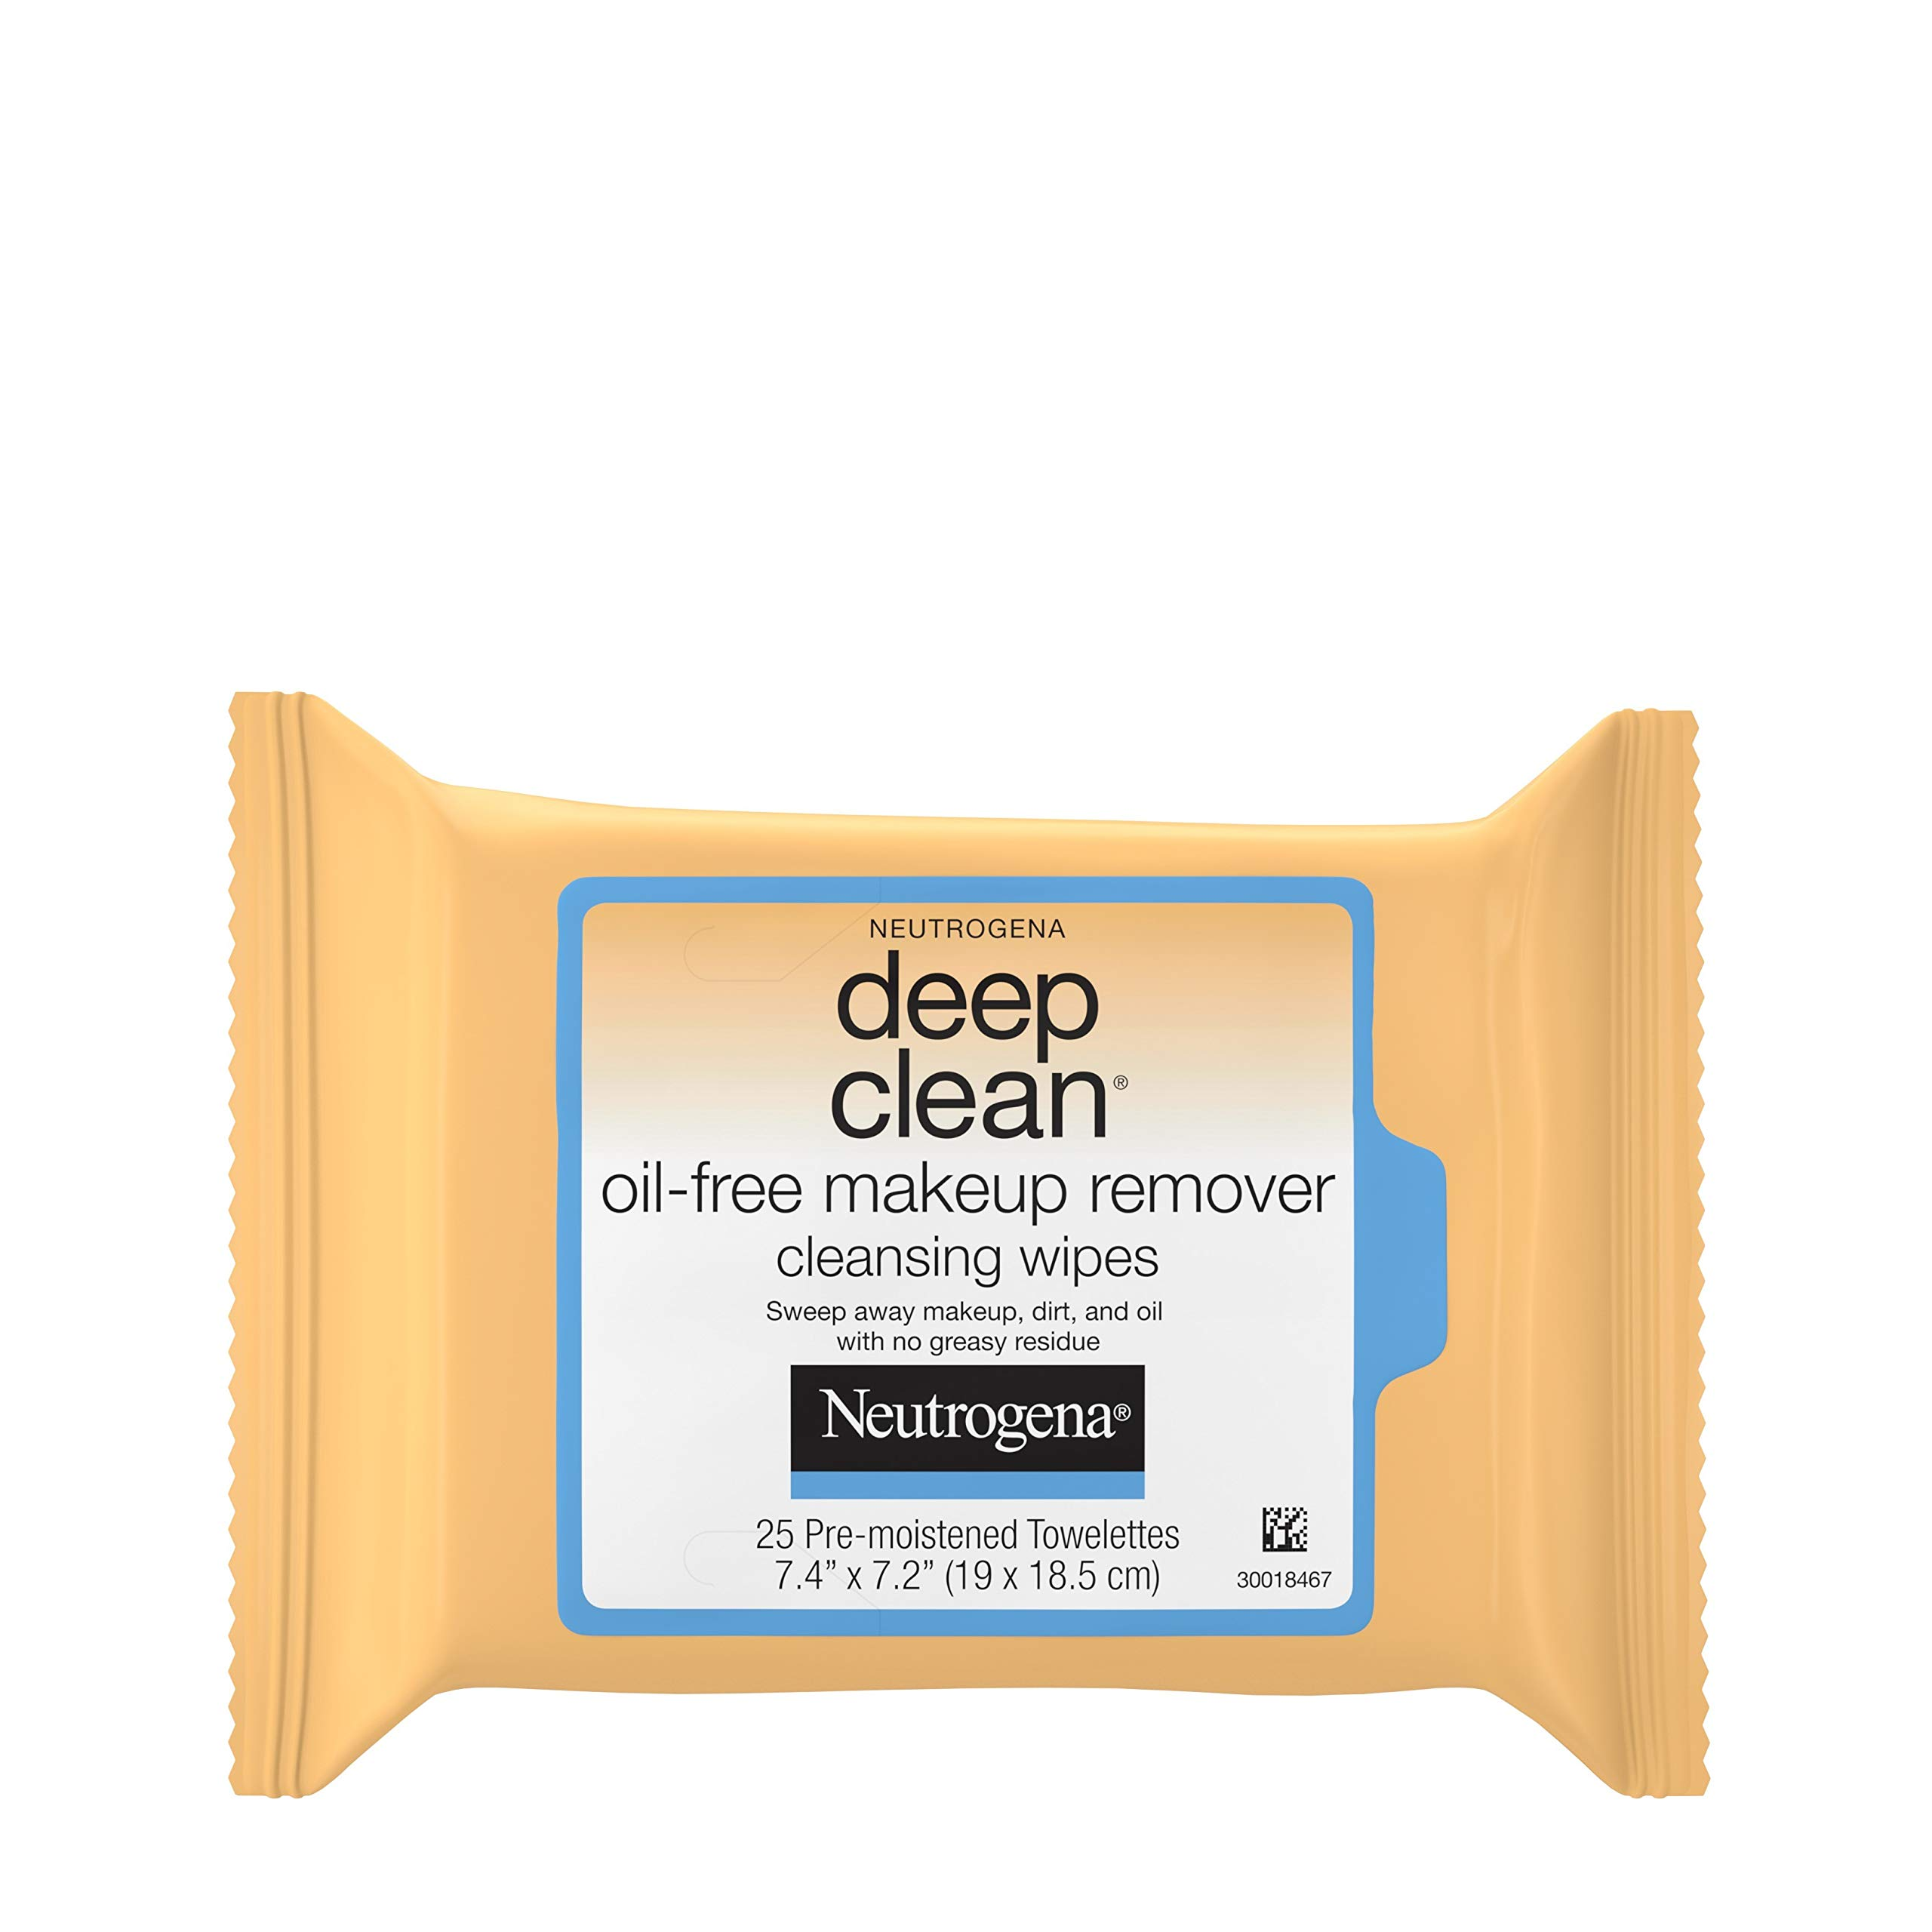 Neutrogena Deep Clean Oil-Free Makeup Remover Cleansing Face Wipes, Daily Cleansing Towelettes to Remove Dirt, Oil, and Makeup, 25 ct